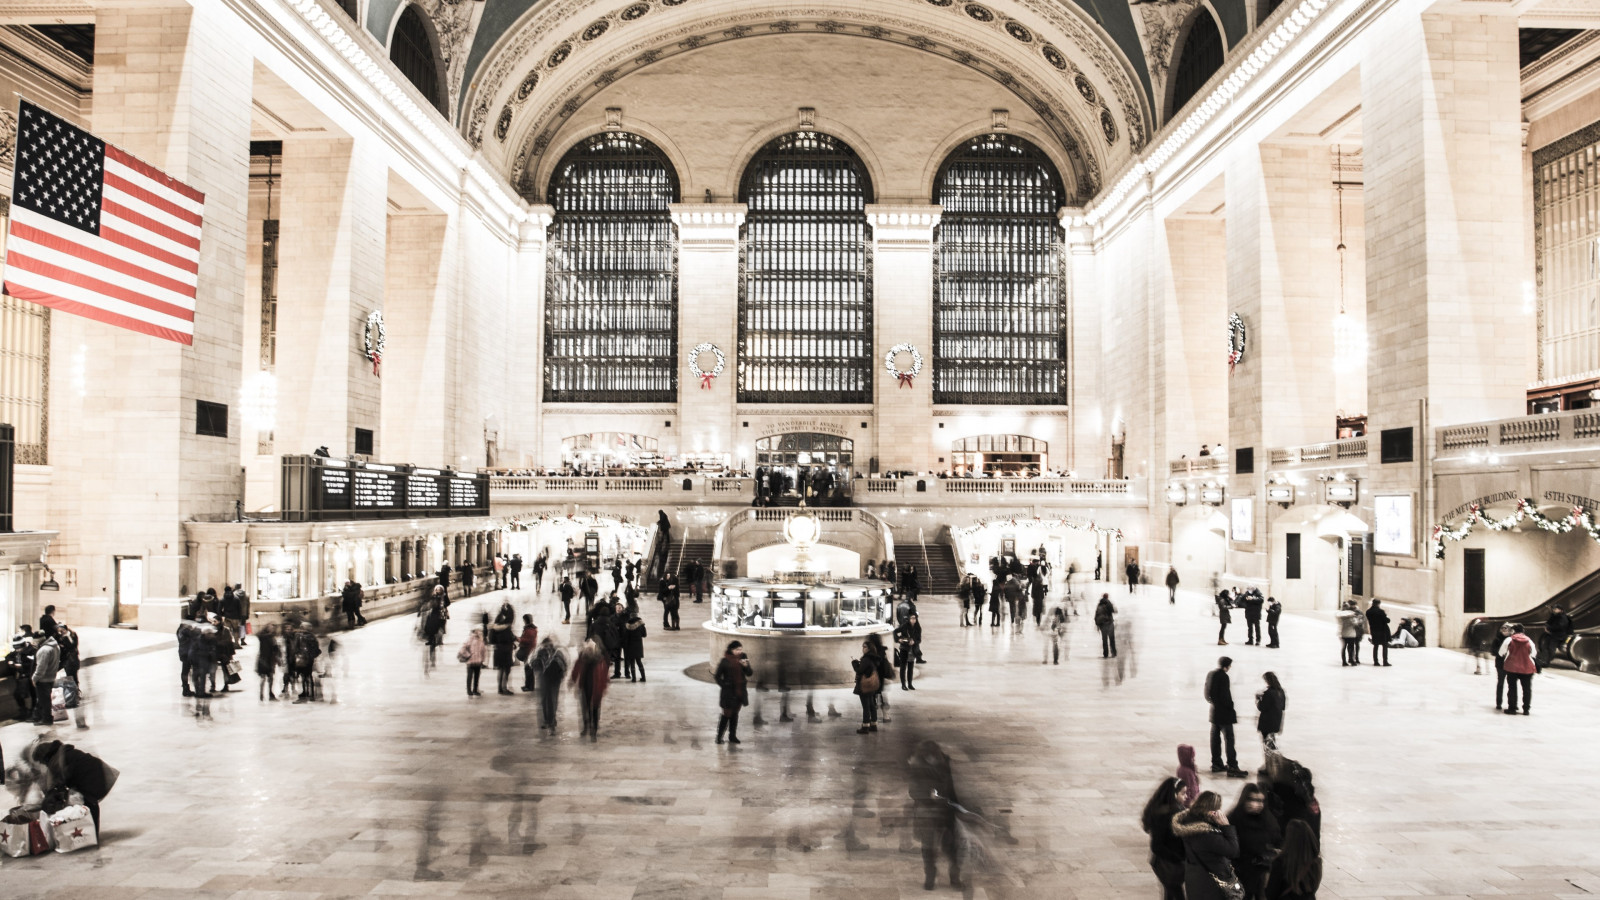 People in NYC Grand Central Terminal | 1600x900 wallpaper